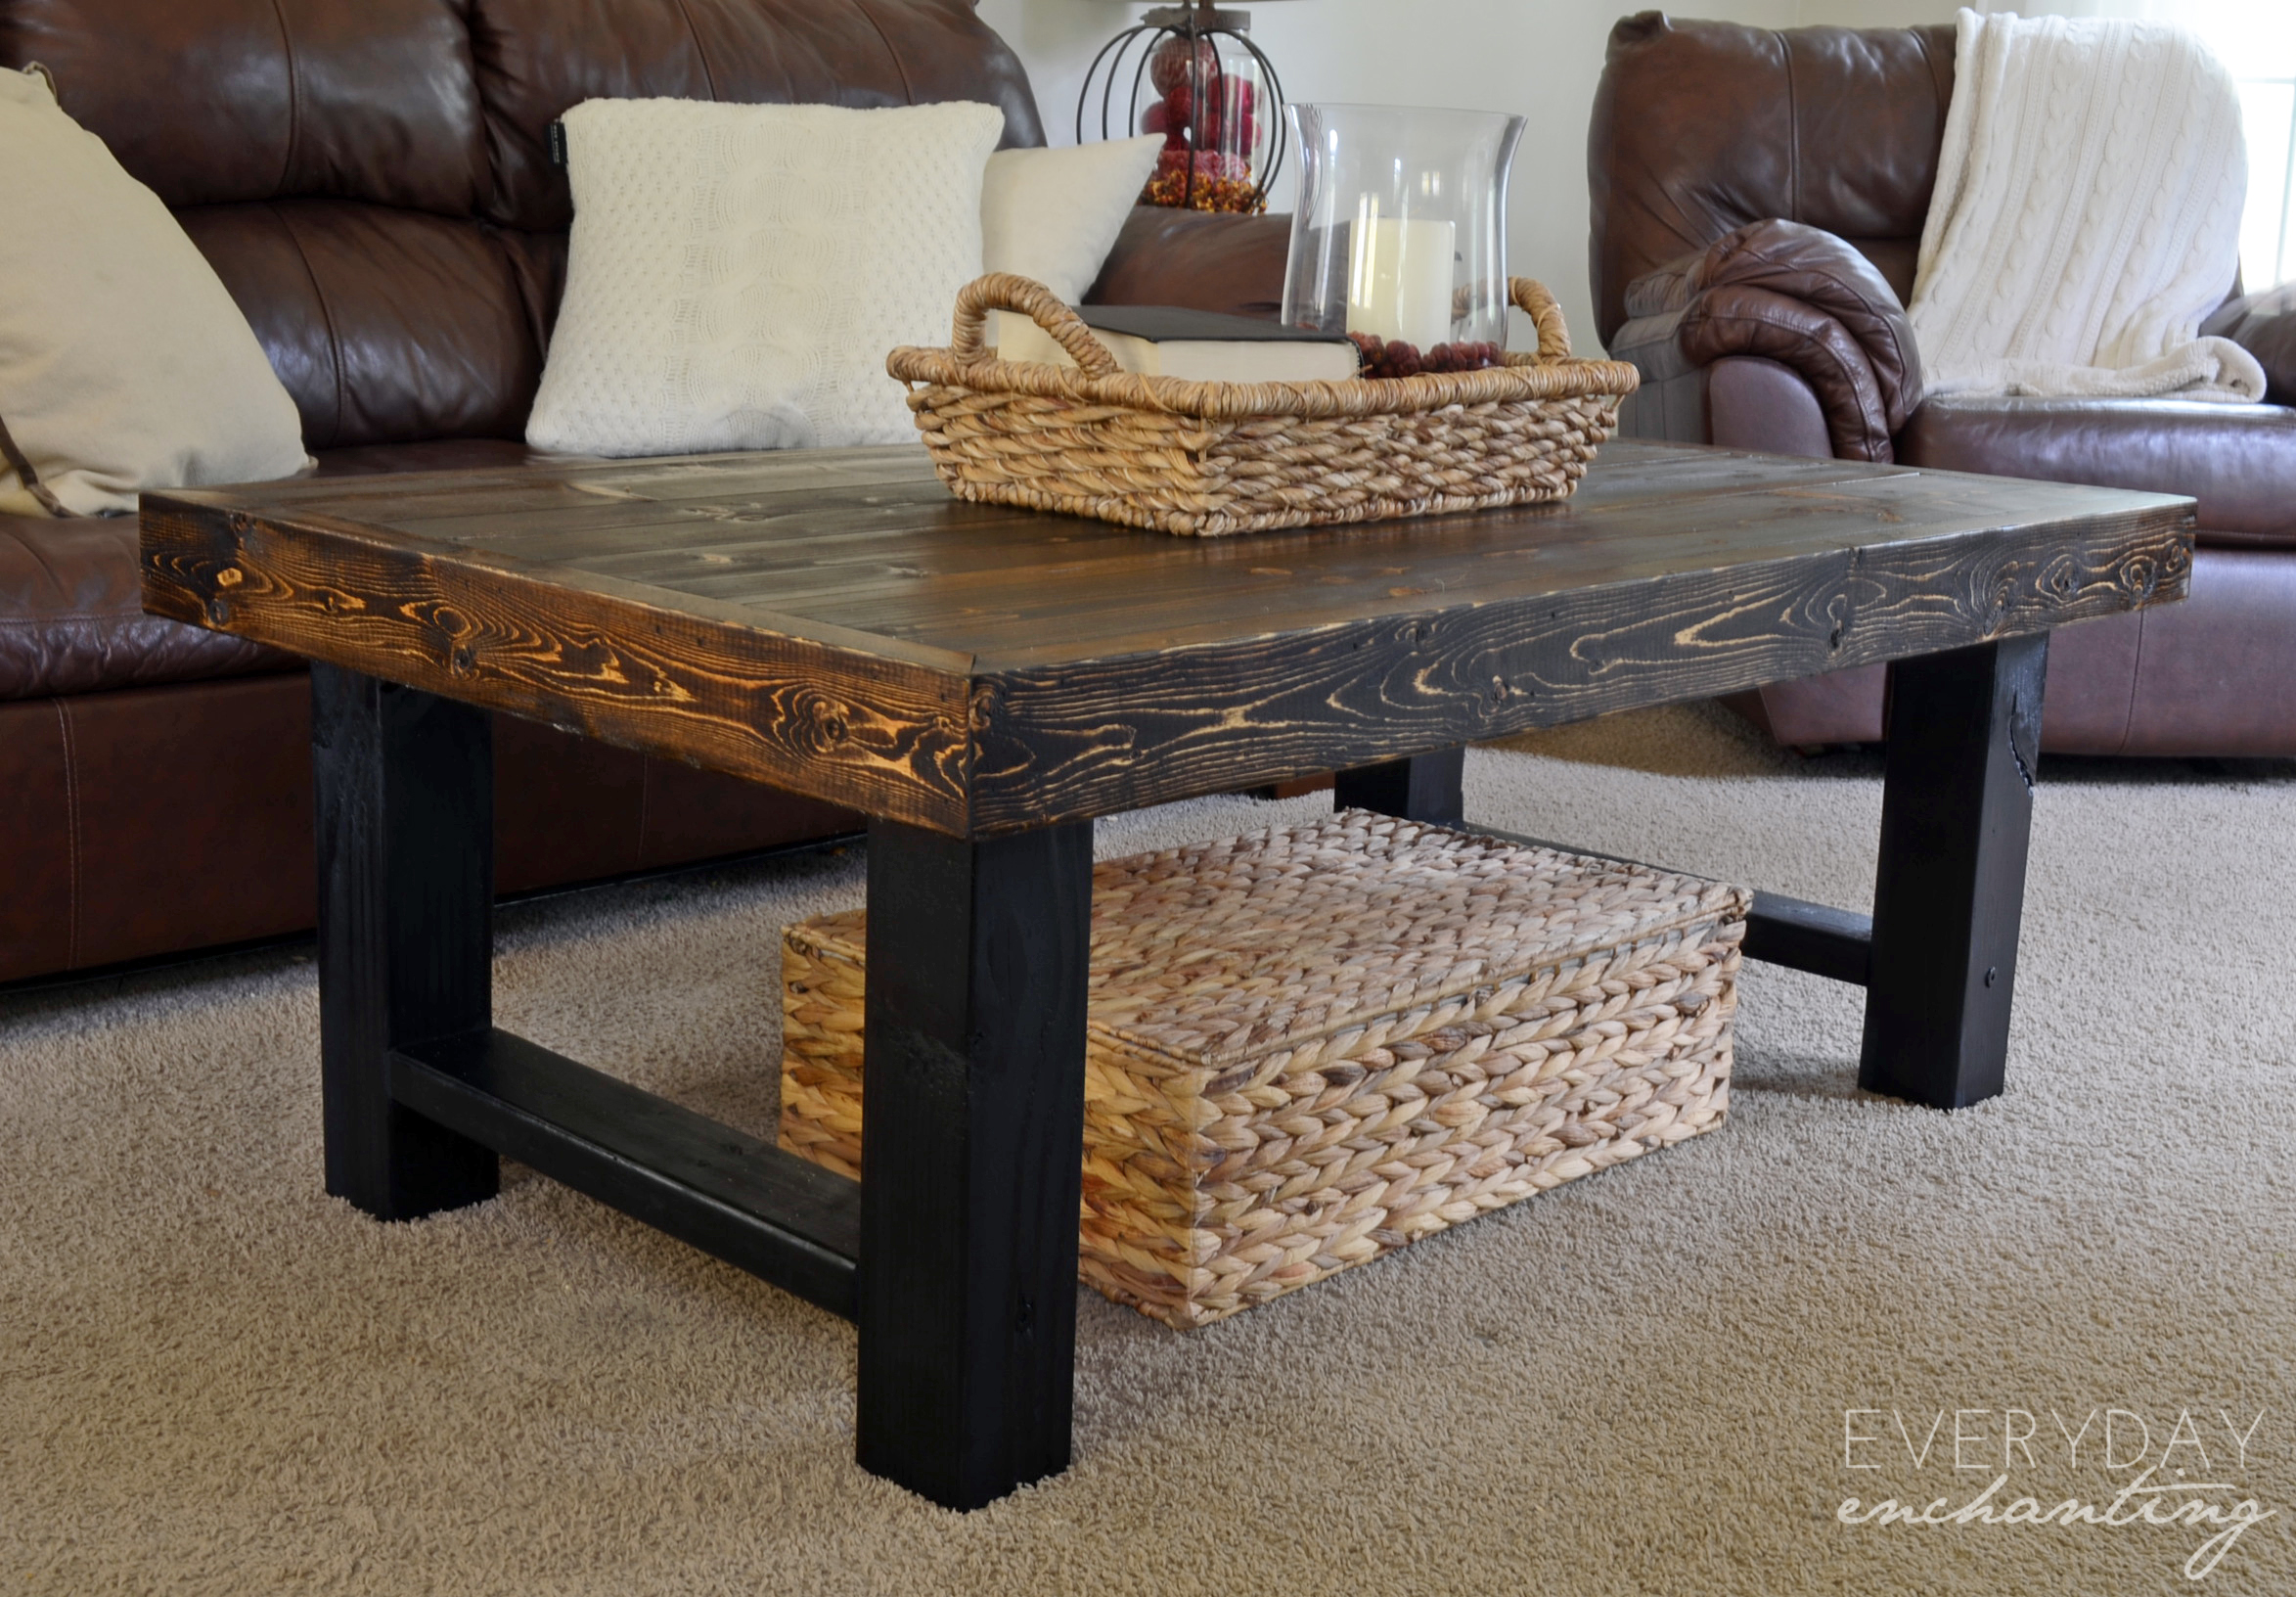 Remodelaholic | DIY Simple Wood Slab Coffee Table